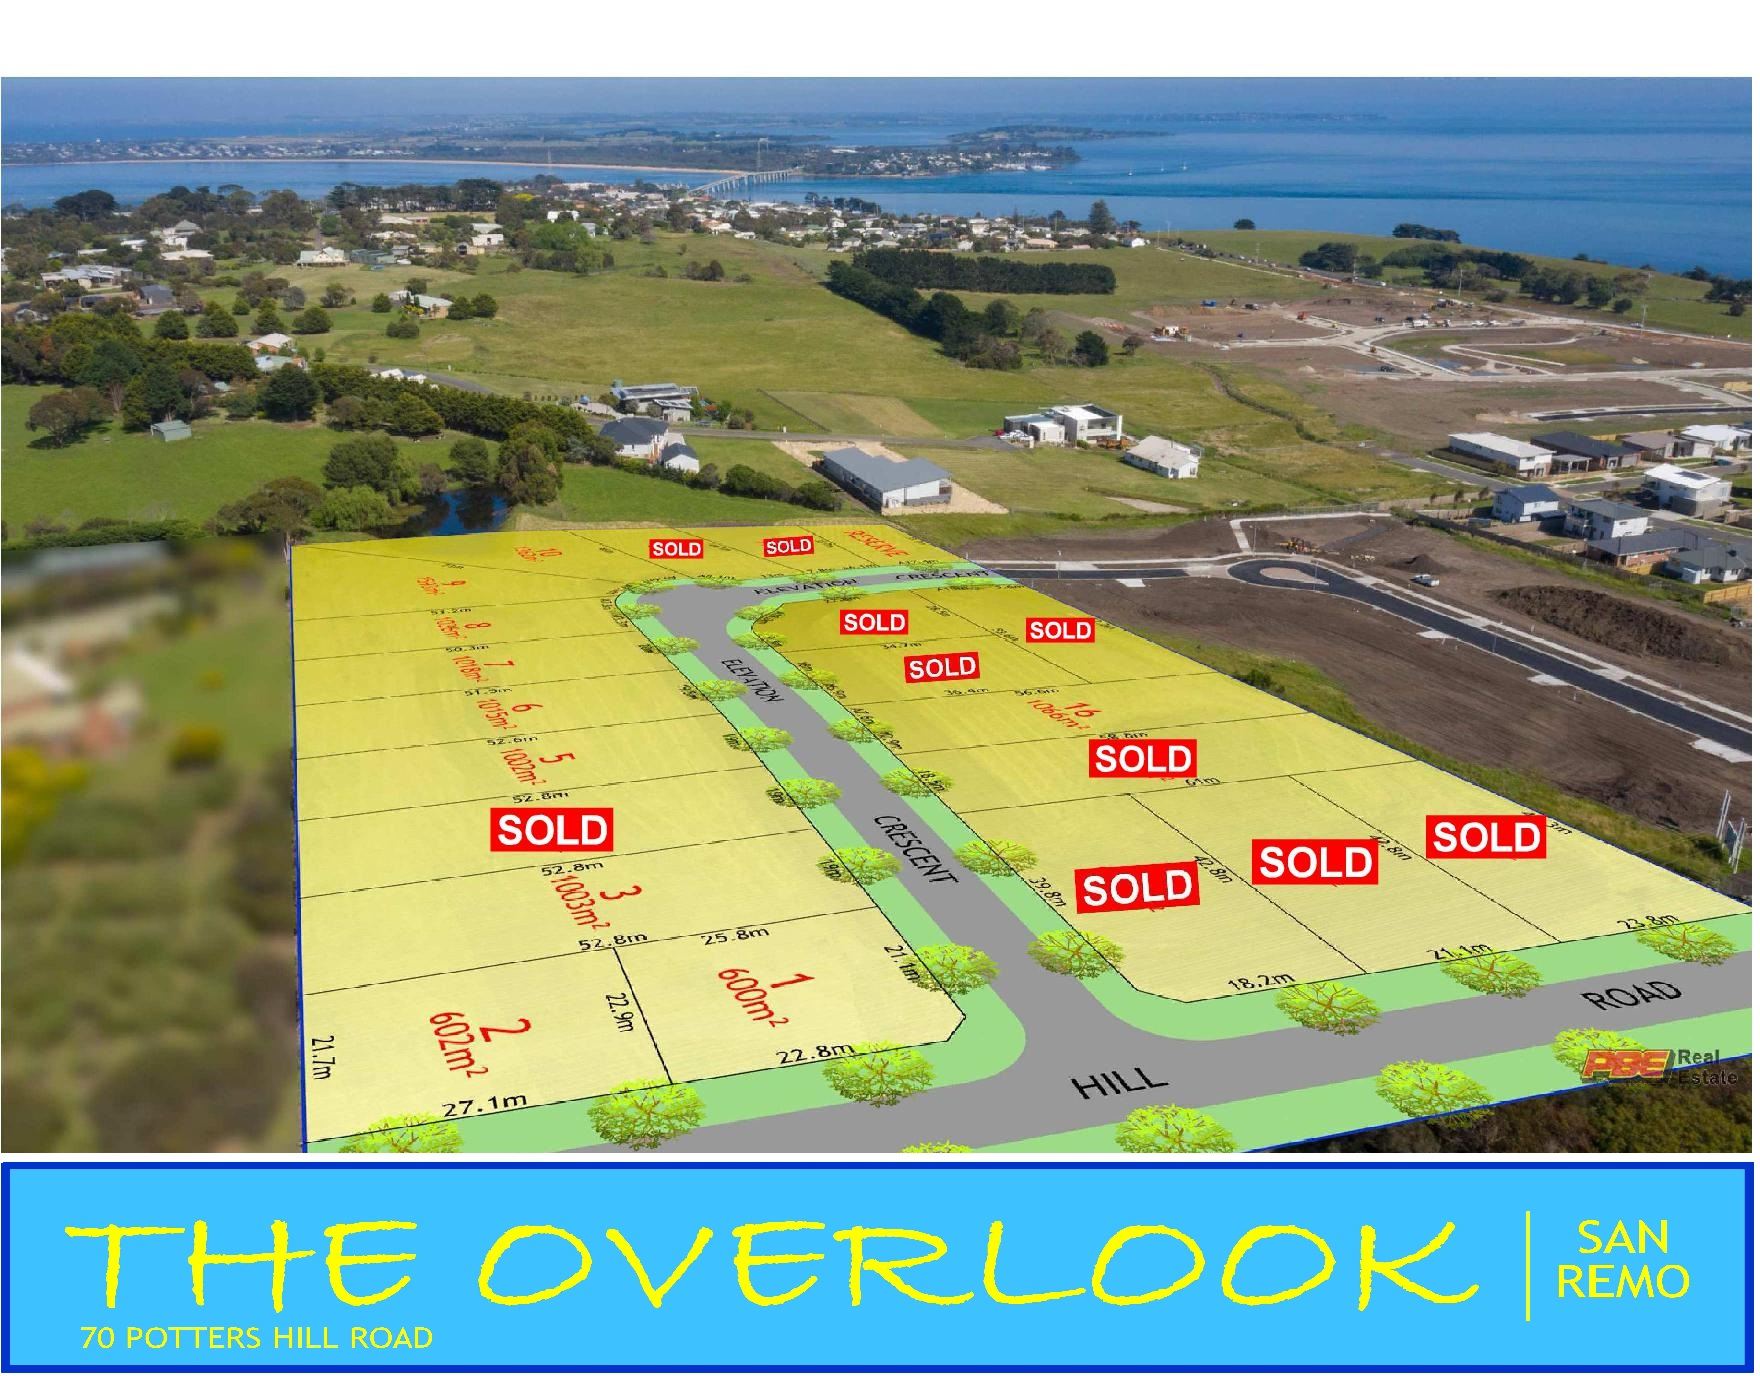 Lot 3/70 Potters Hill Road SAN REMO